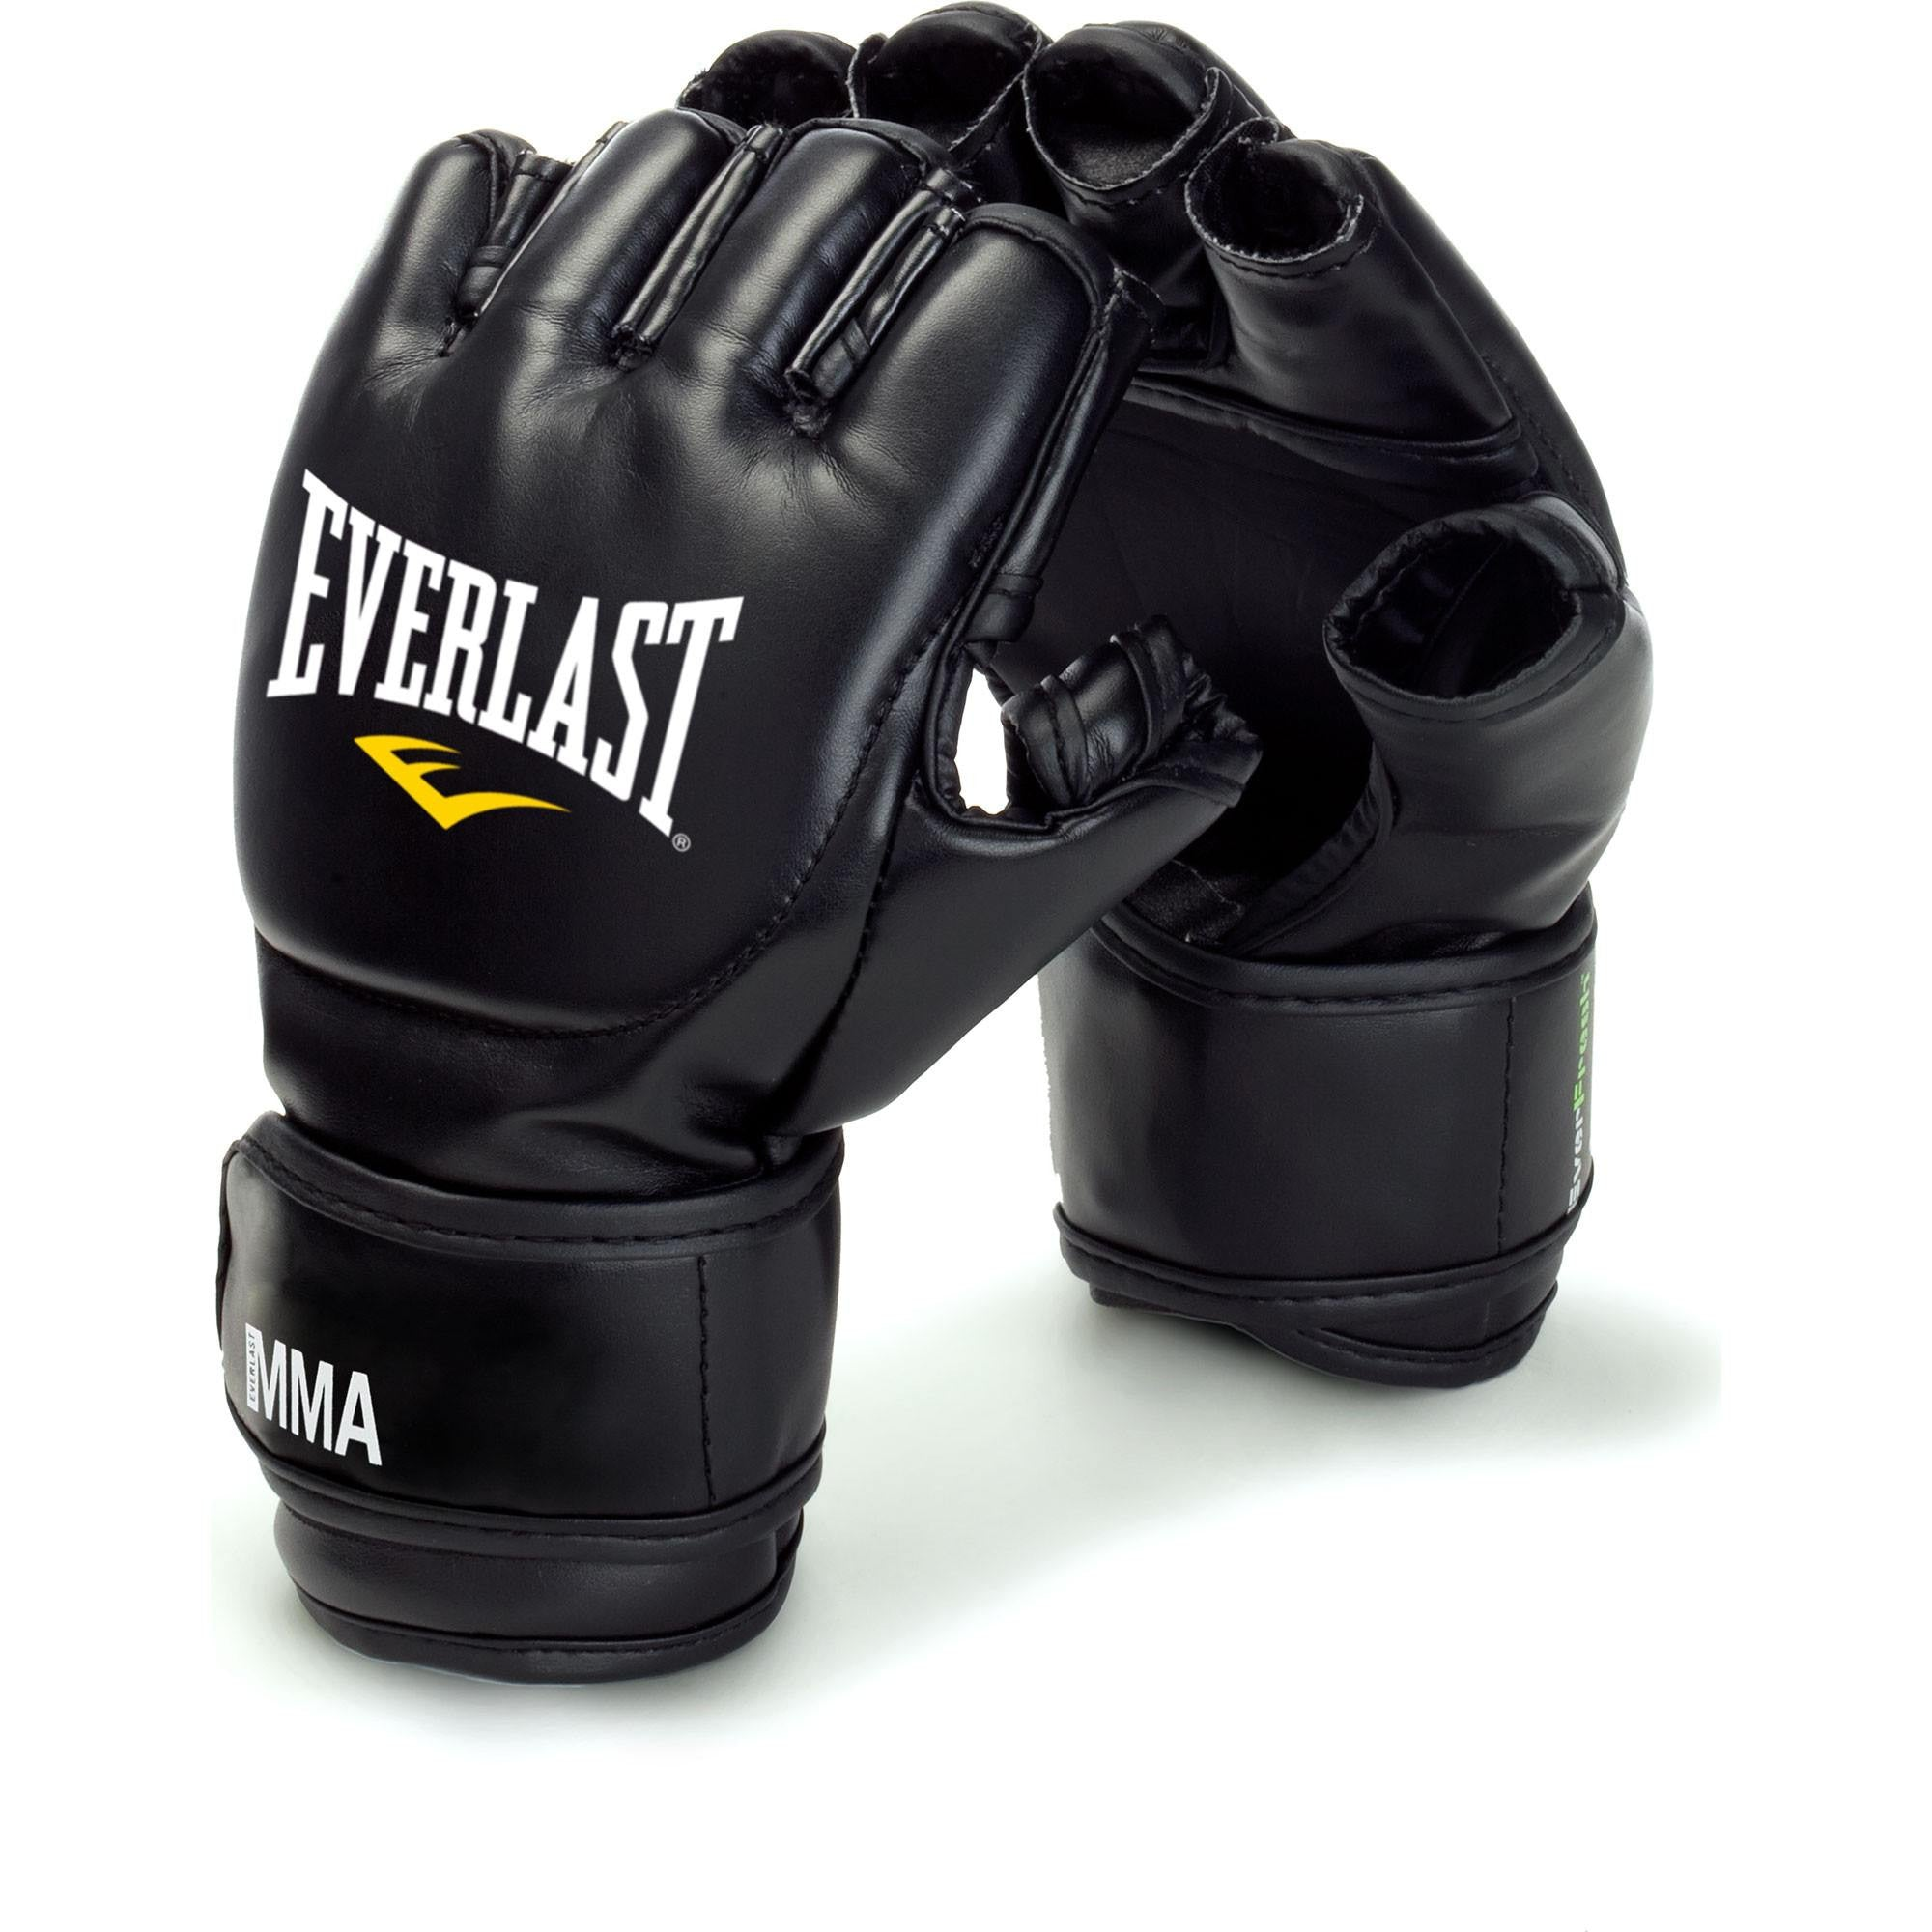 Everlast MMA Grappling Gloves by Everlast Canada